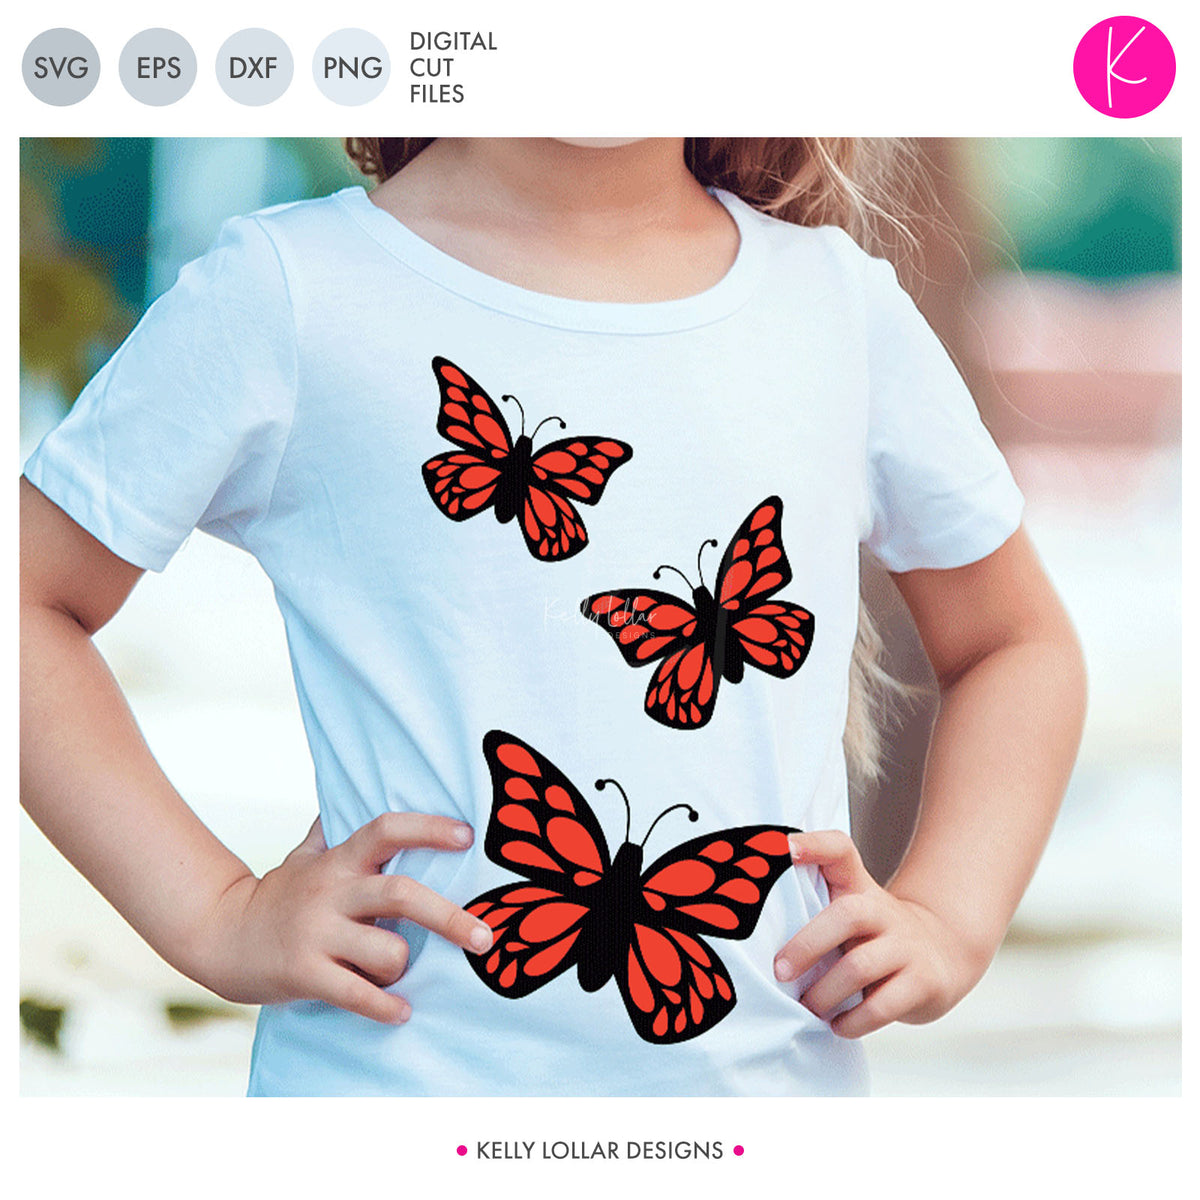 Butterfly Pack | SVG DXF EPS PNG Cut Files